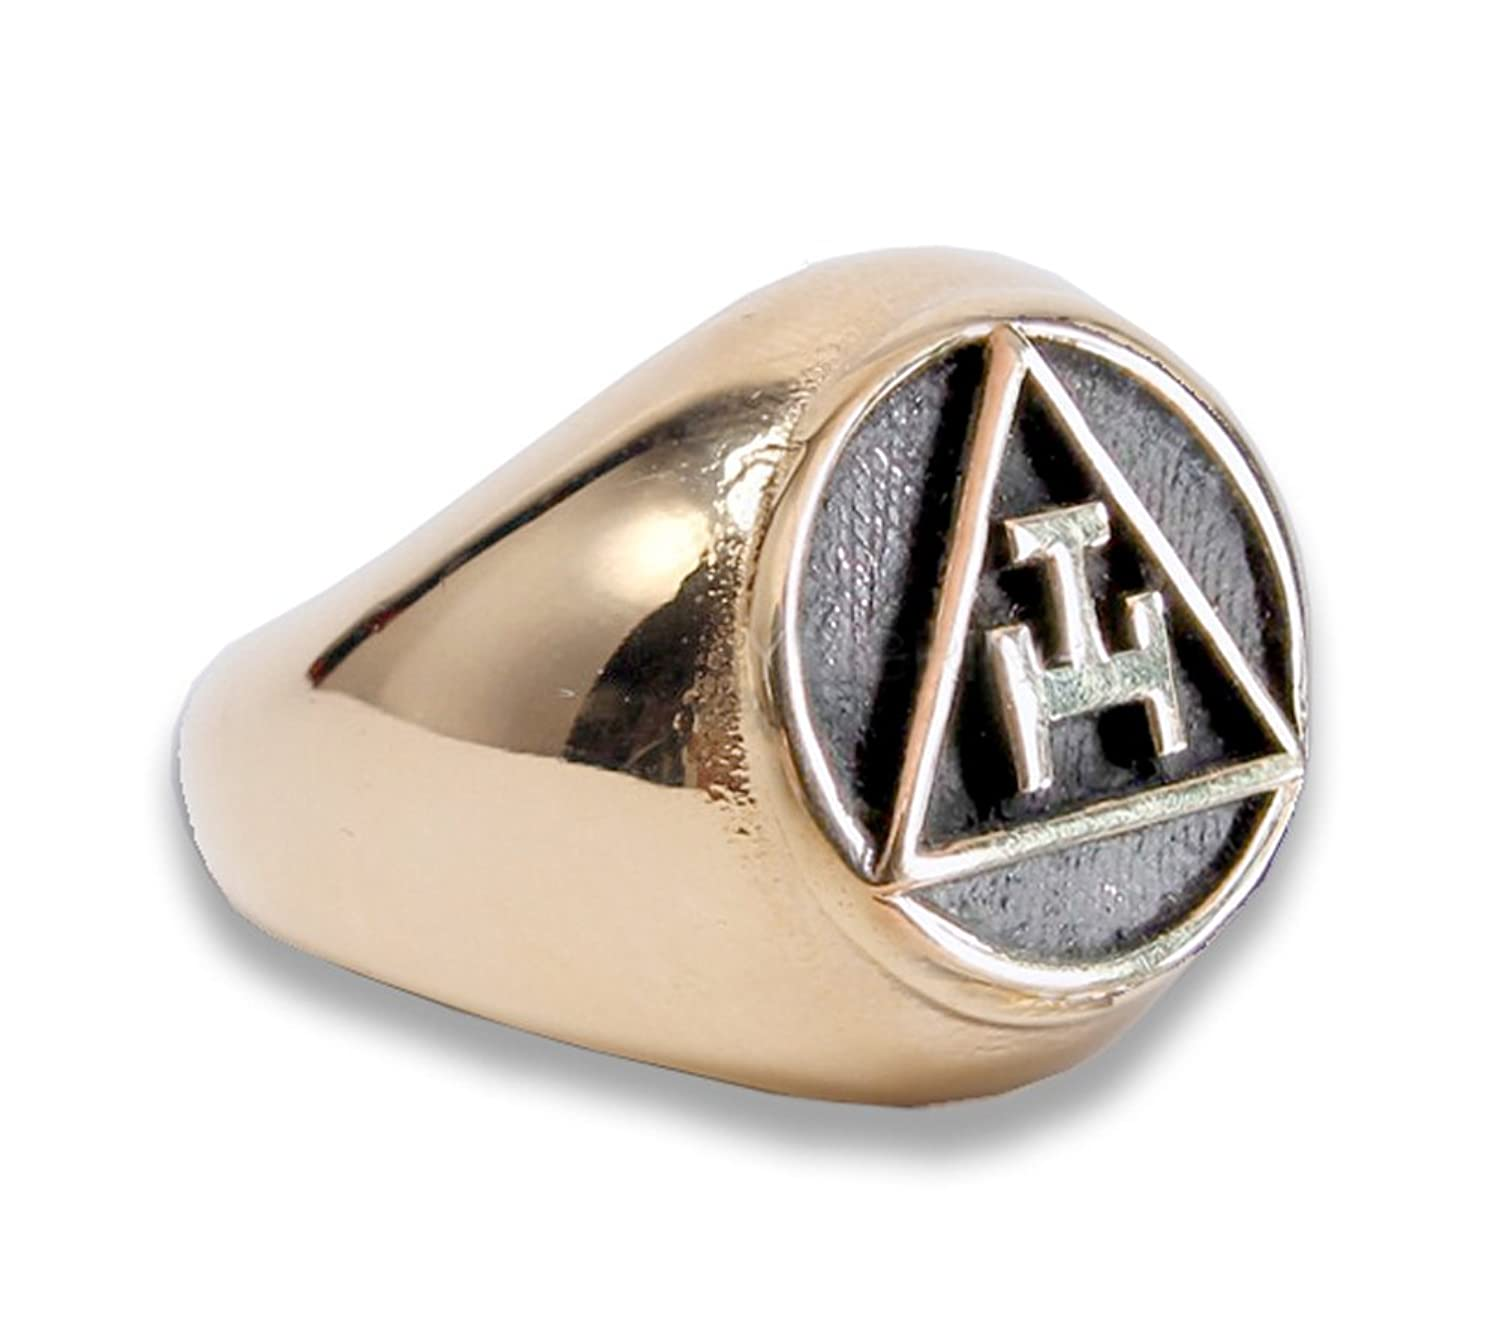 Gold Tone Stainless Steel - Freemason Royal Arch Symbol Ring - Triple Tau Chiseled Face Masonic Rings for sale